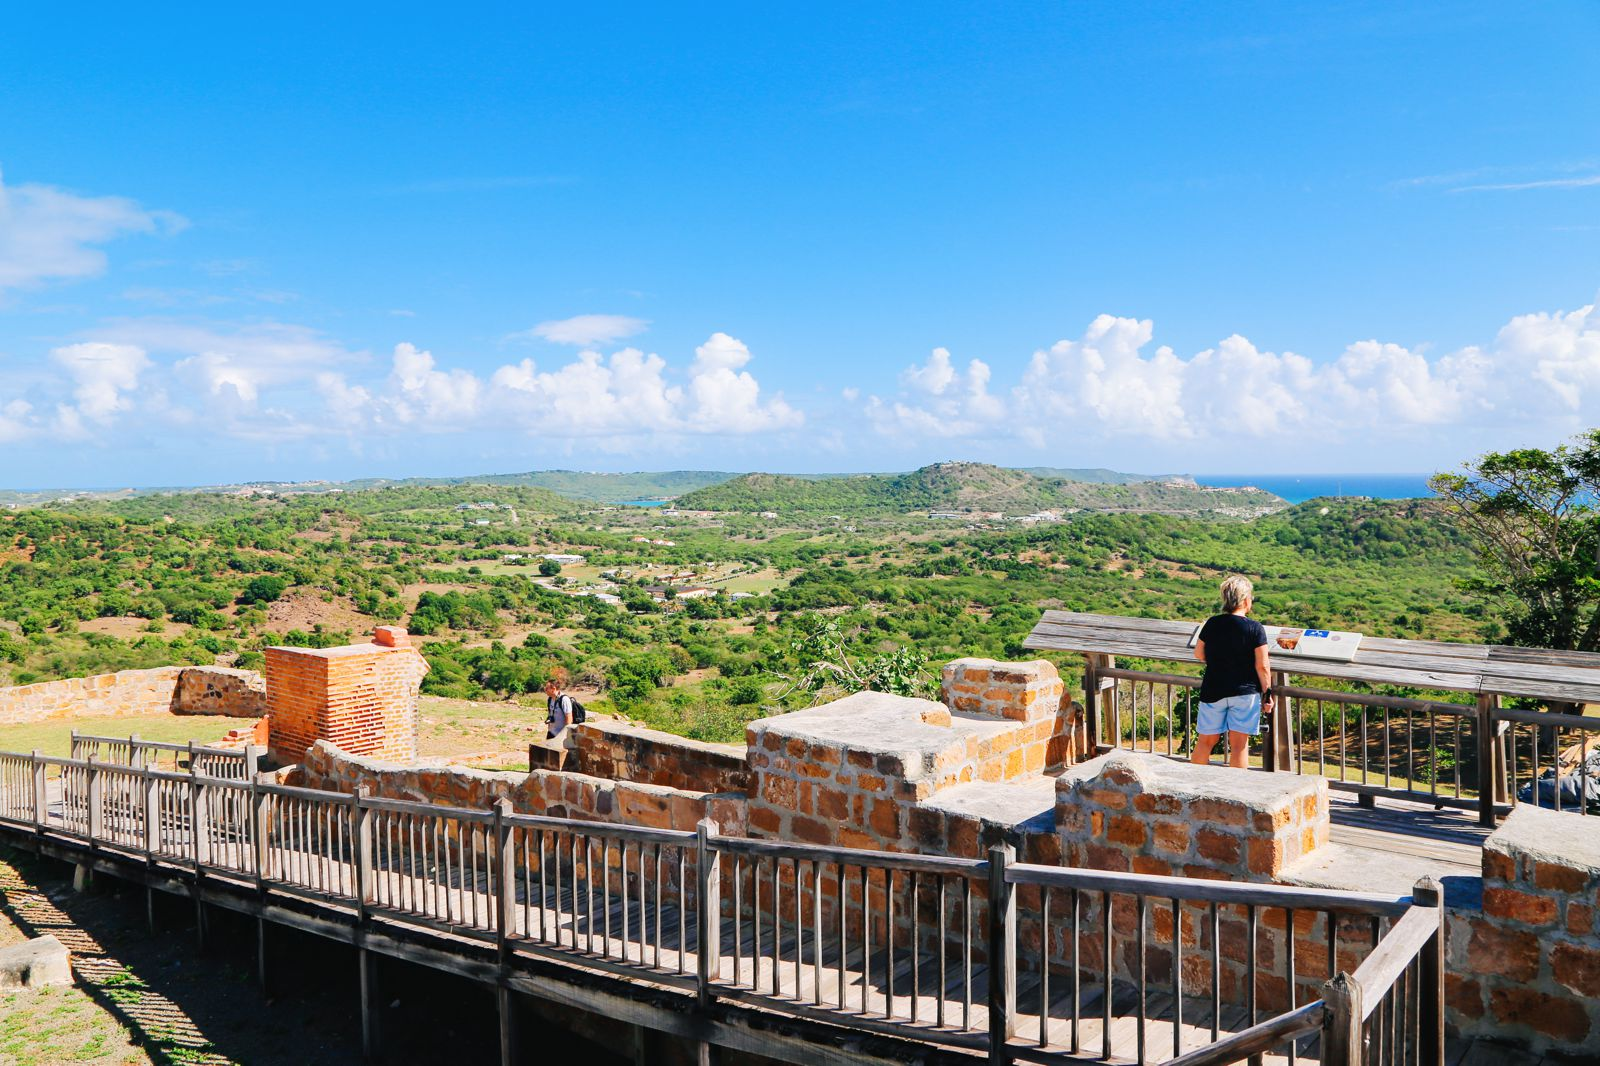 Exploring The Caribbean Island Of Antigua By Land - Part 1 (46)